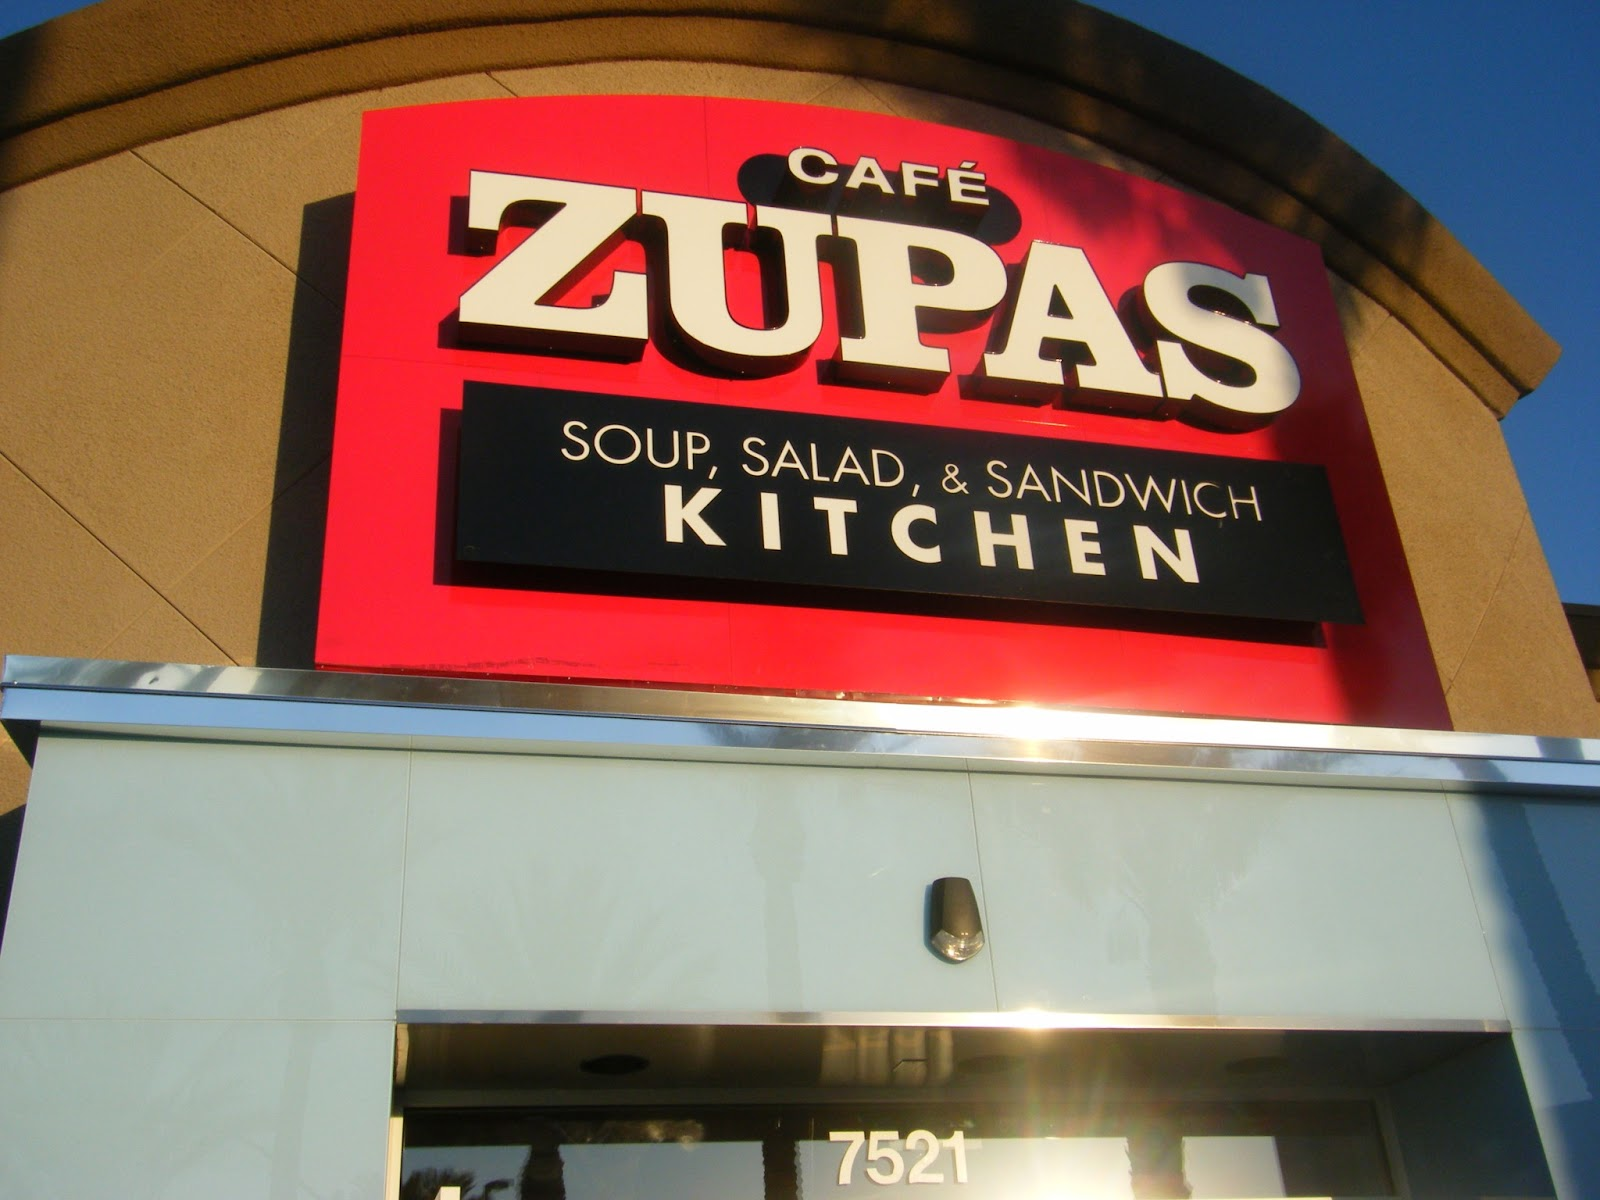 Mommie Of 2 Cafe Zupas Opens In Summerlin Nv